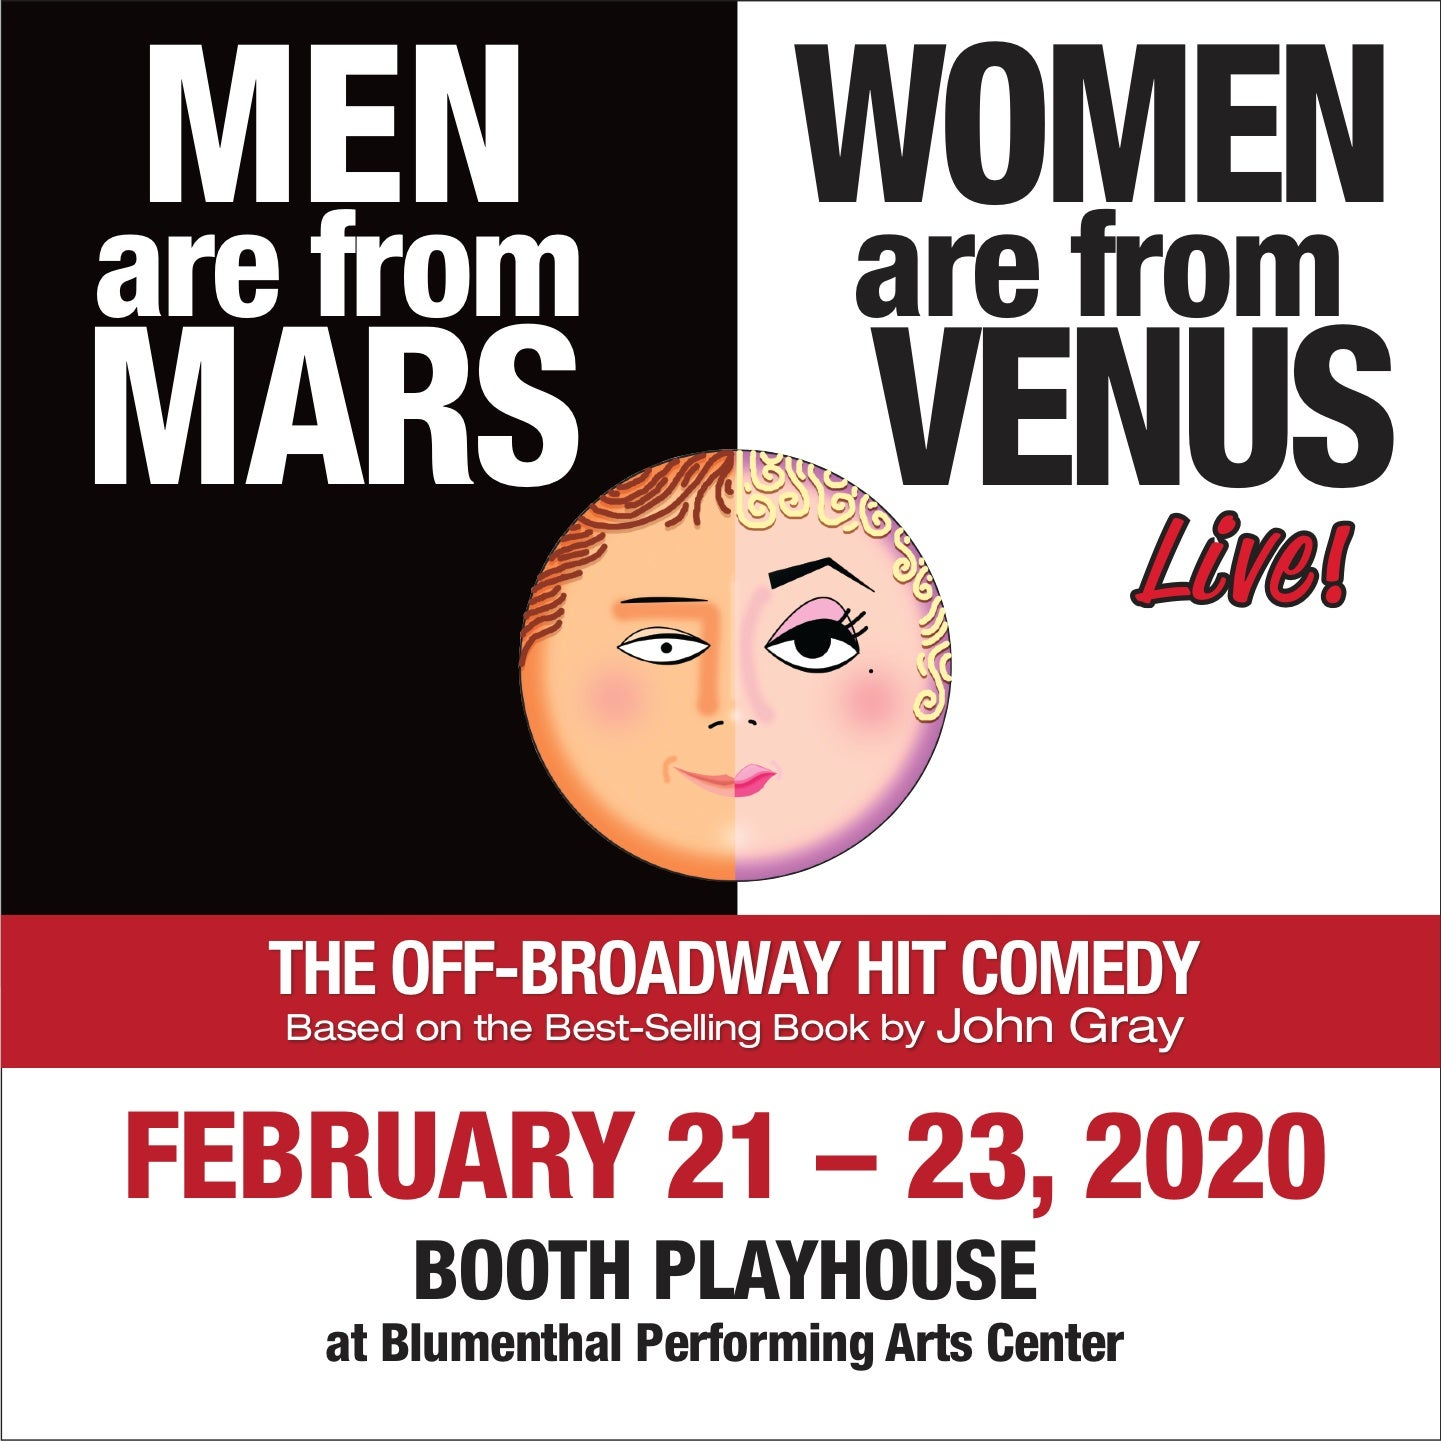 Men are from Mars Women are from Venus - LIVE